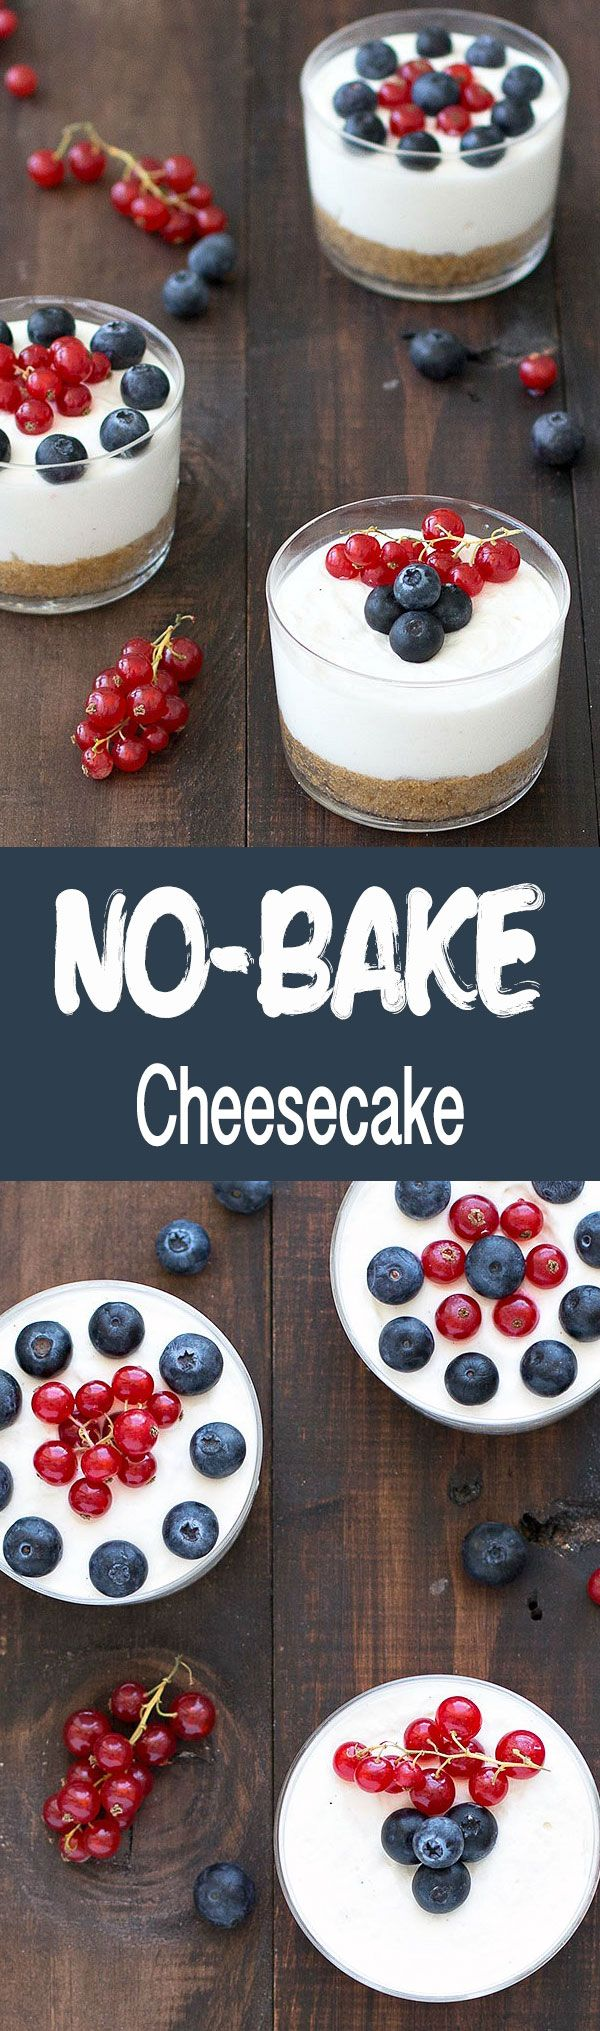 This no-bake cheesecake in a glass is super easy to make and best of all, there is no need to turn on the oven.